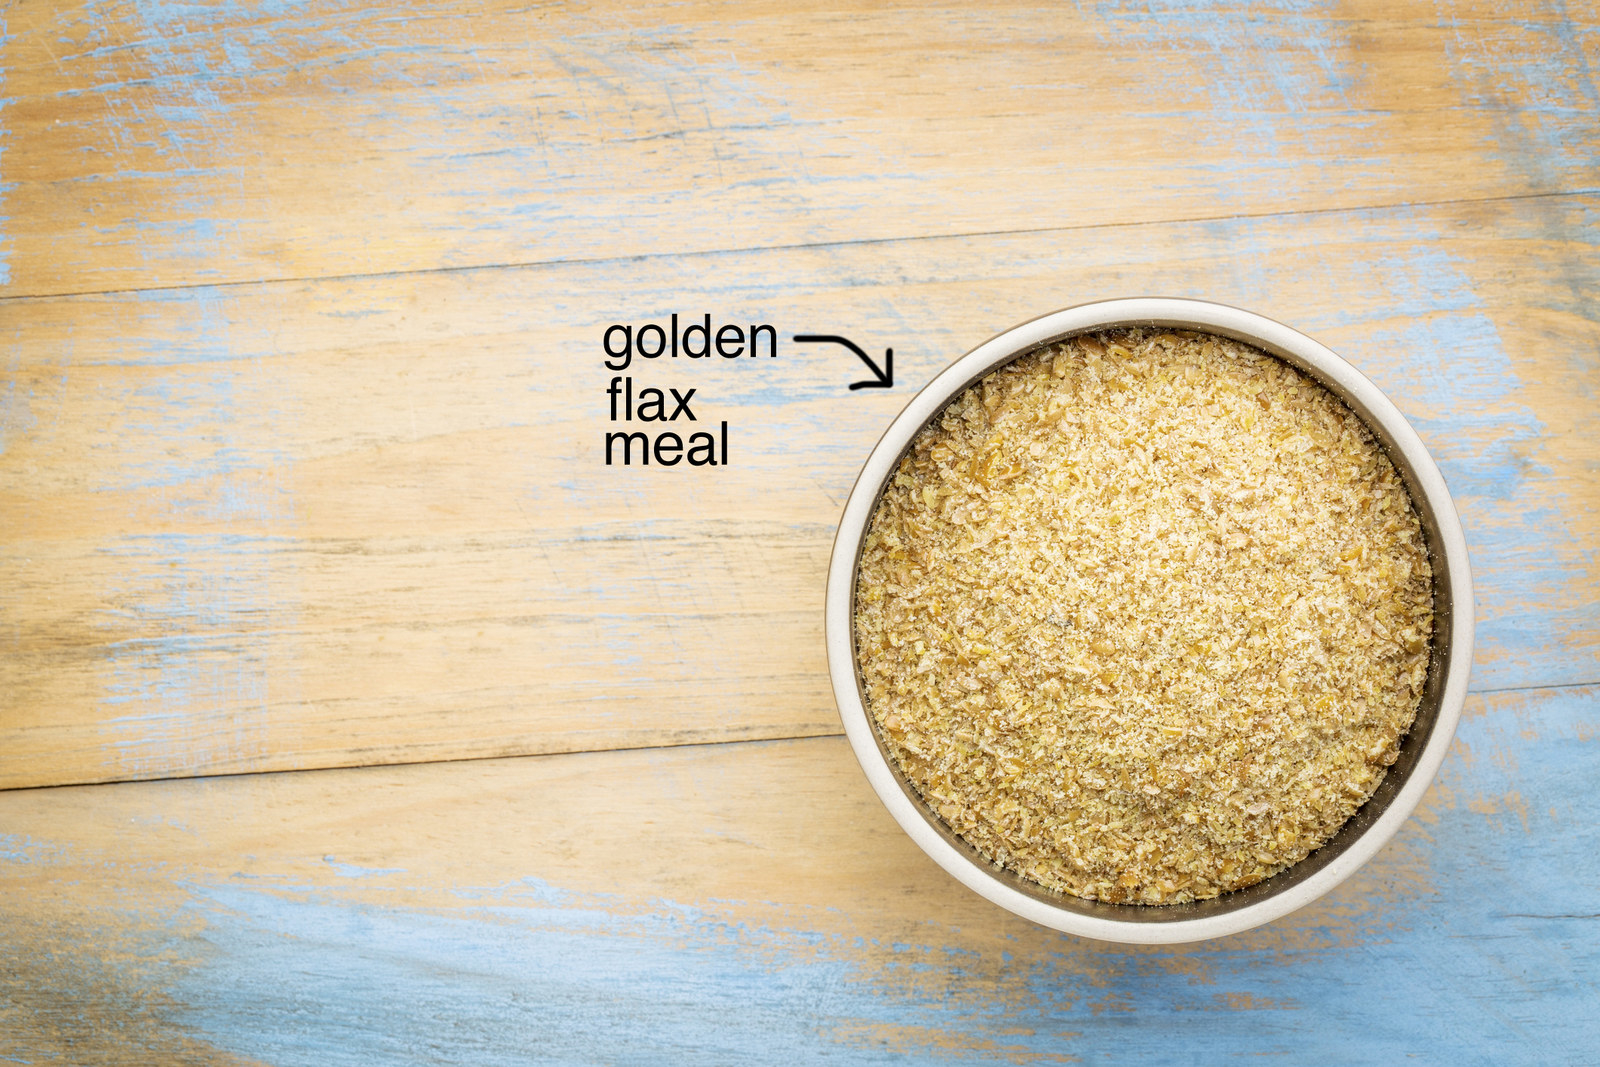 Another popular low-carb flour substitute is flax meal — which is also commonly used as an egg replacer in baked goods. Experienced bakers recommend sticking to golden flax meal as it has a slightly less gummy texture compared to regular flax meal. Again, with any gluten-free flour substitute, stick to recipes that are specifically designed to be made with it and don't swap it into recipes that call for wheat flour.Learn more about baking with flax meal.